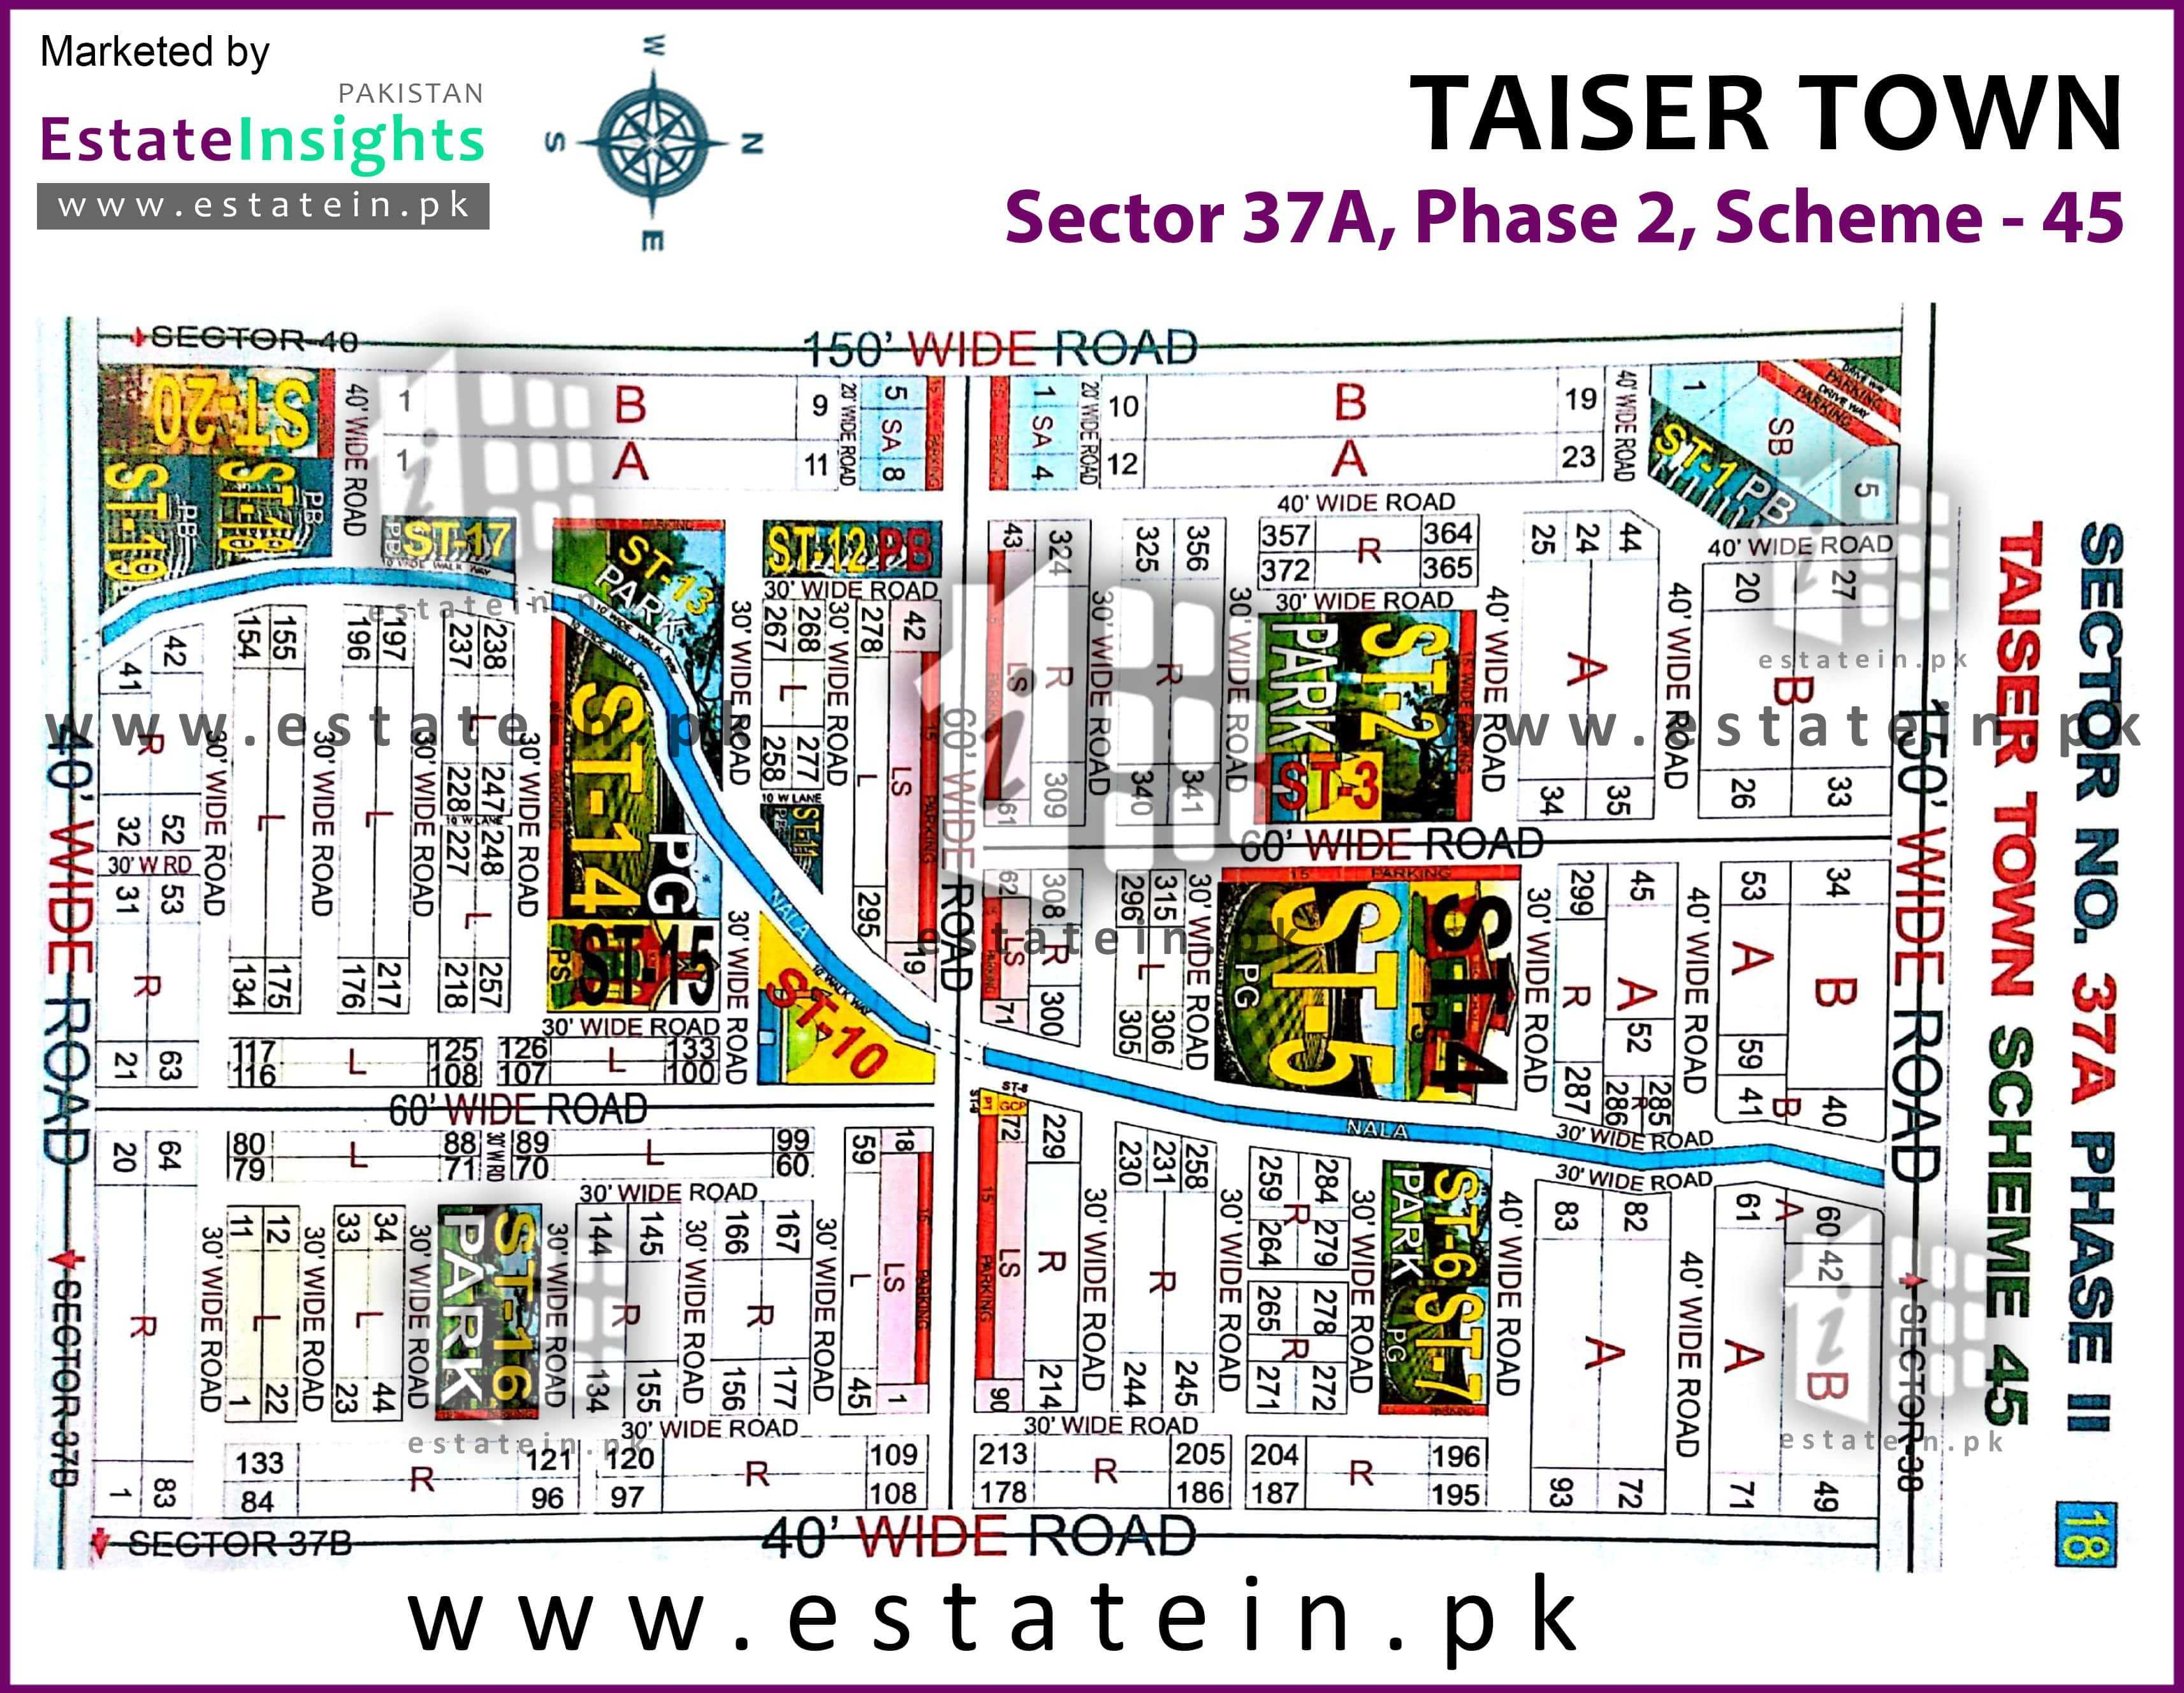 Site Plan of Sector 37A of Taiser Town Phase II